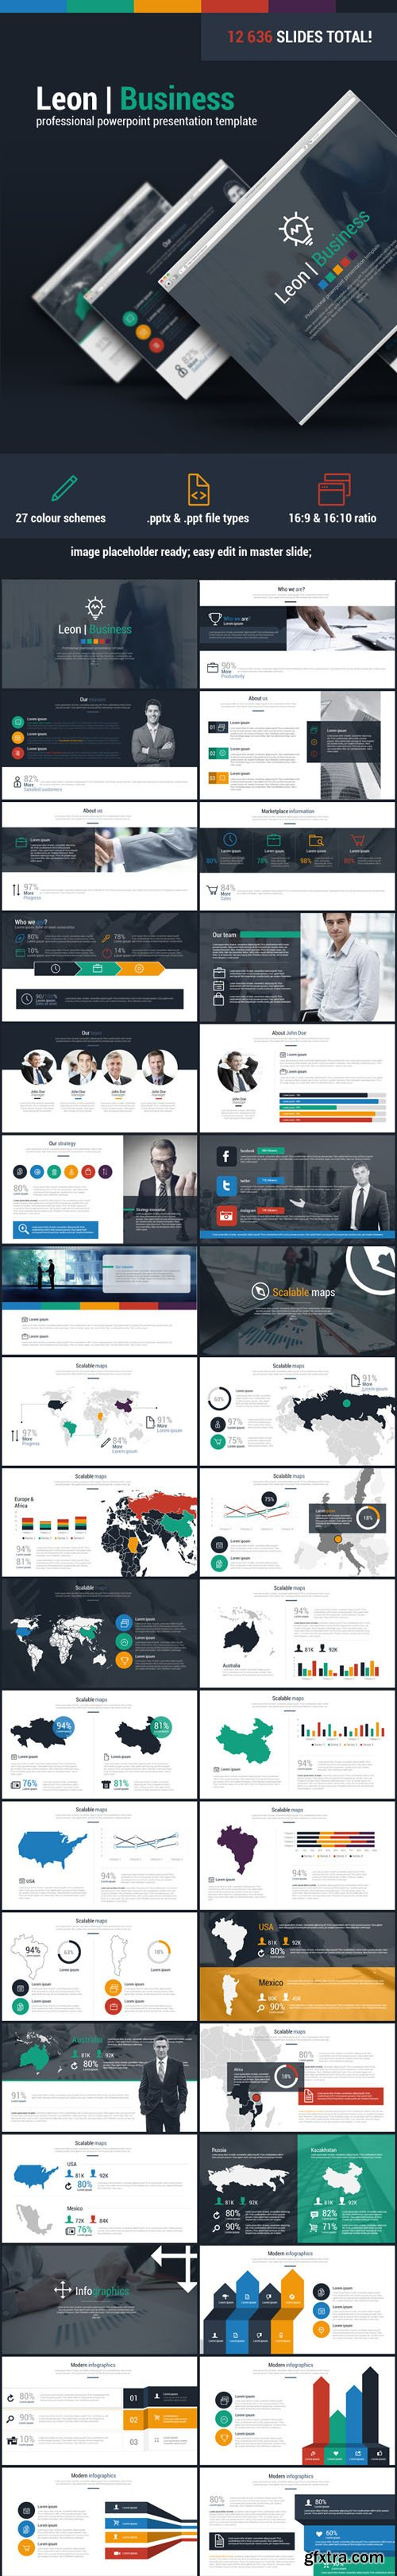 Graphicriver - Leon Business Powerpoint Presentation Template 11084650